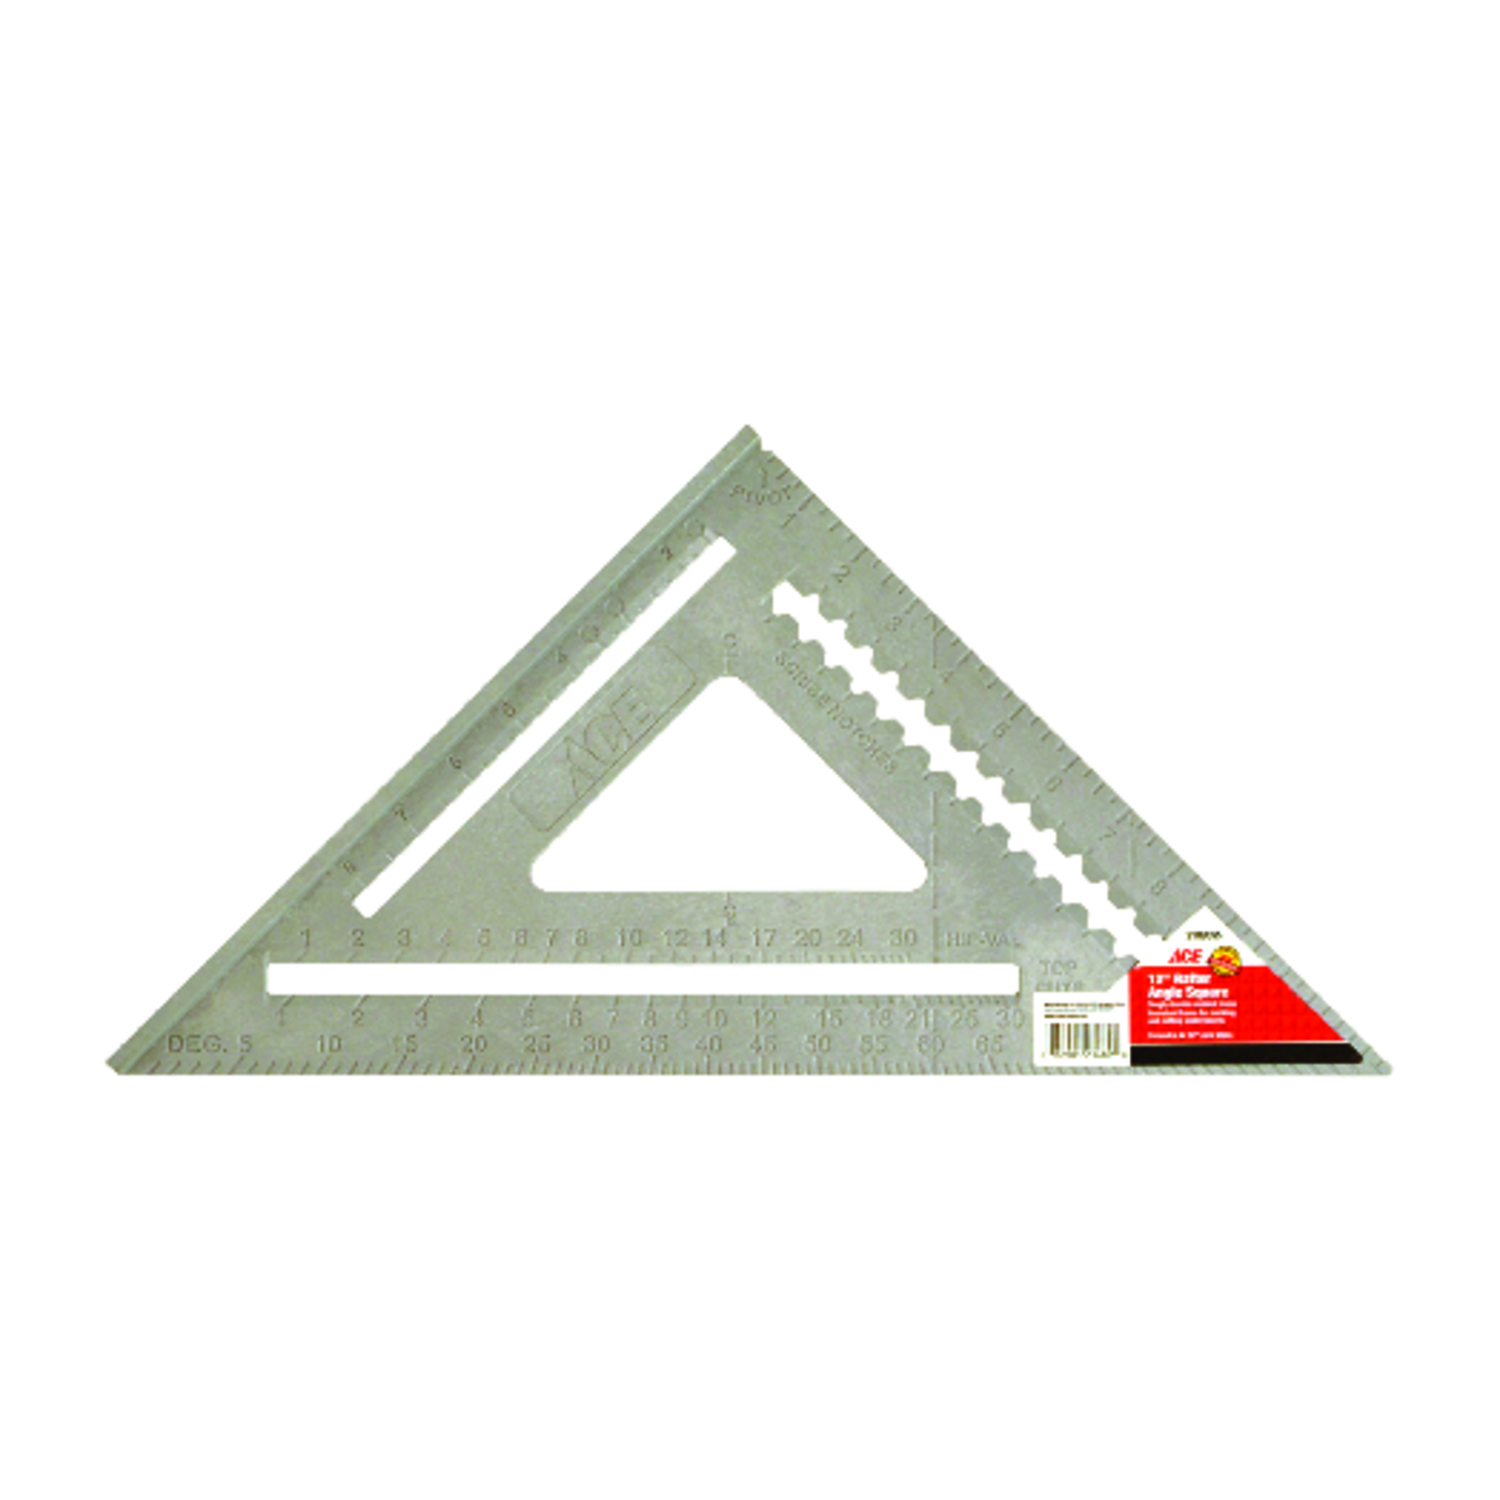 Ace  12  L x 17 in. H Rafter Square  Orange  Polystyrene